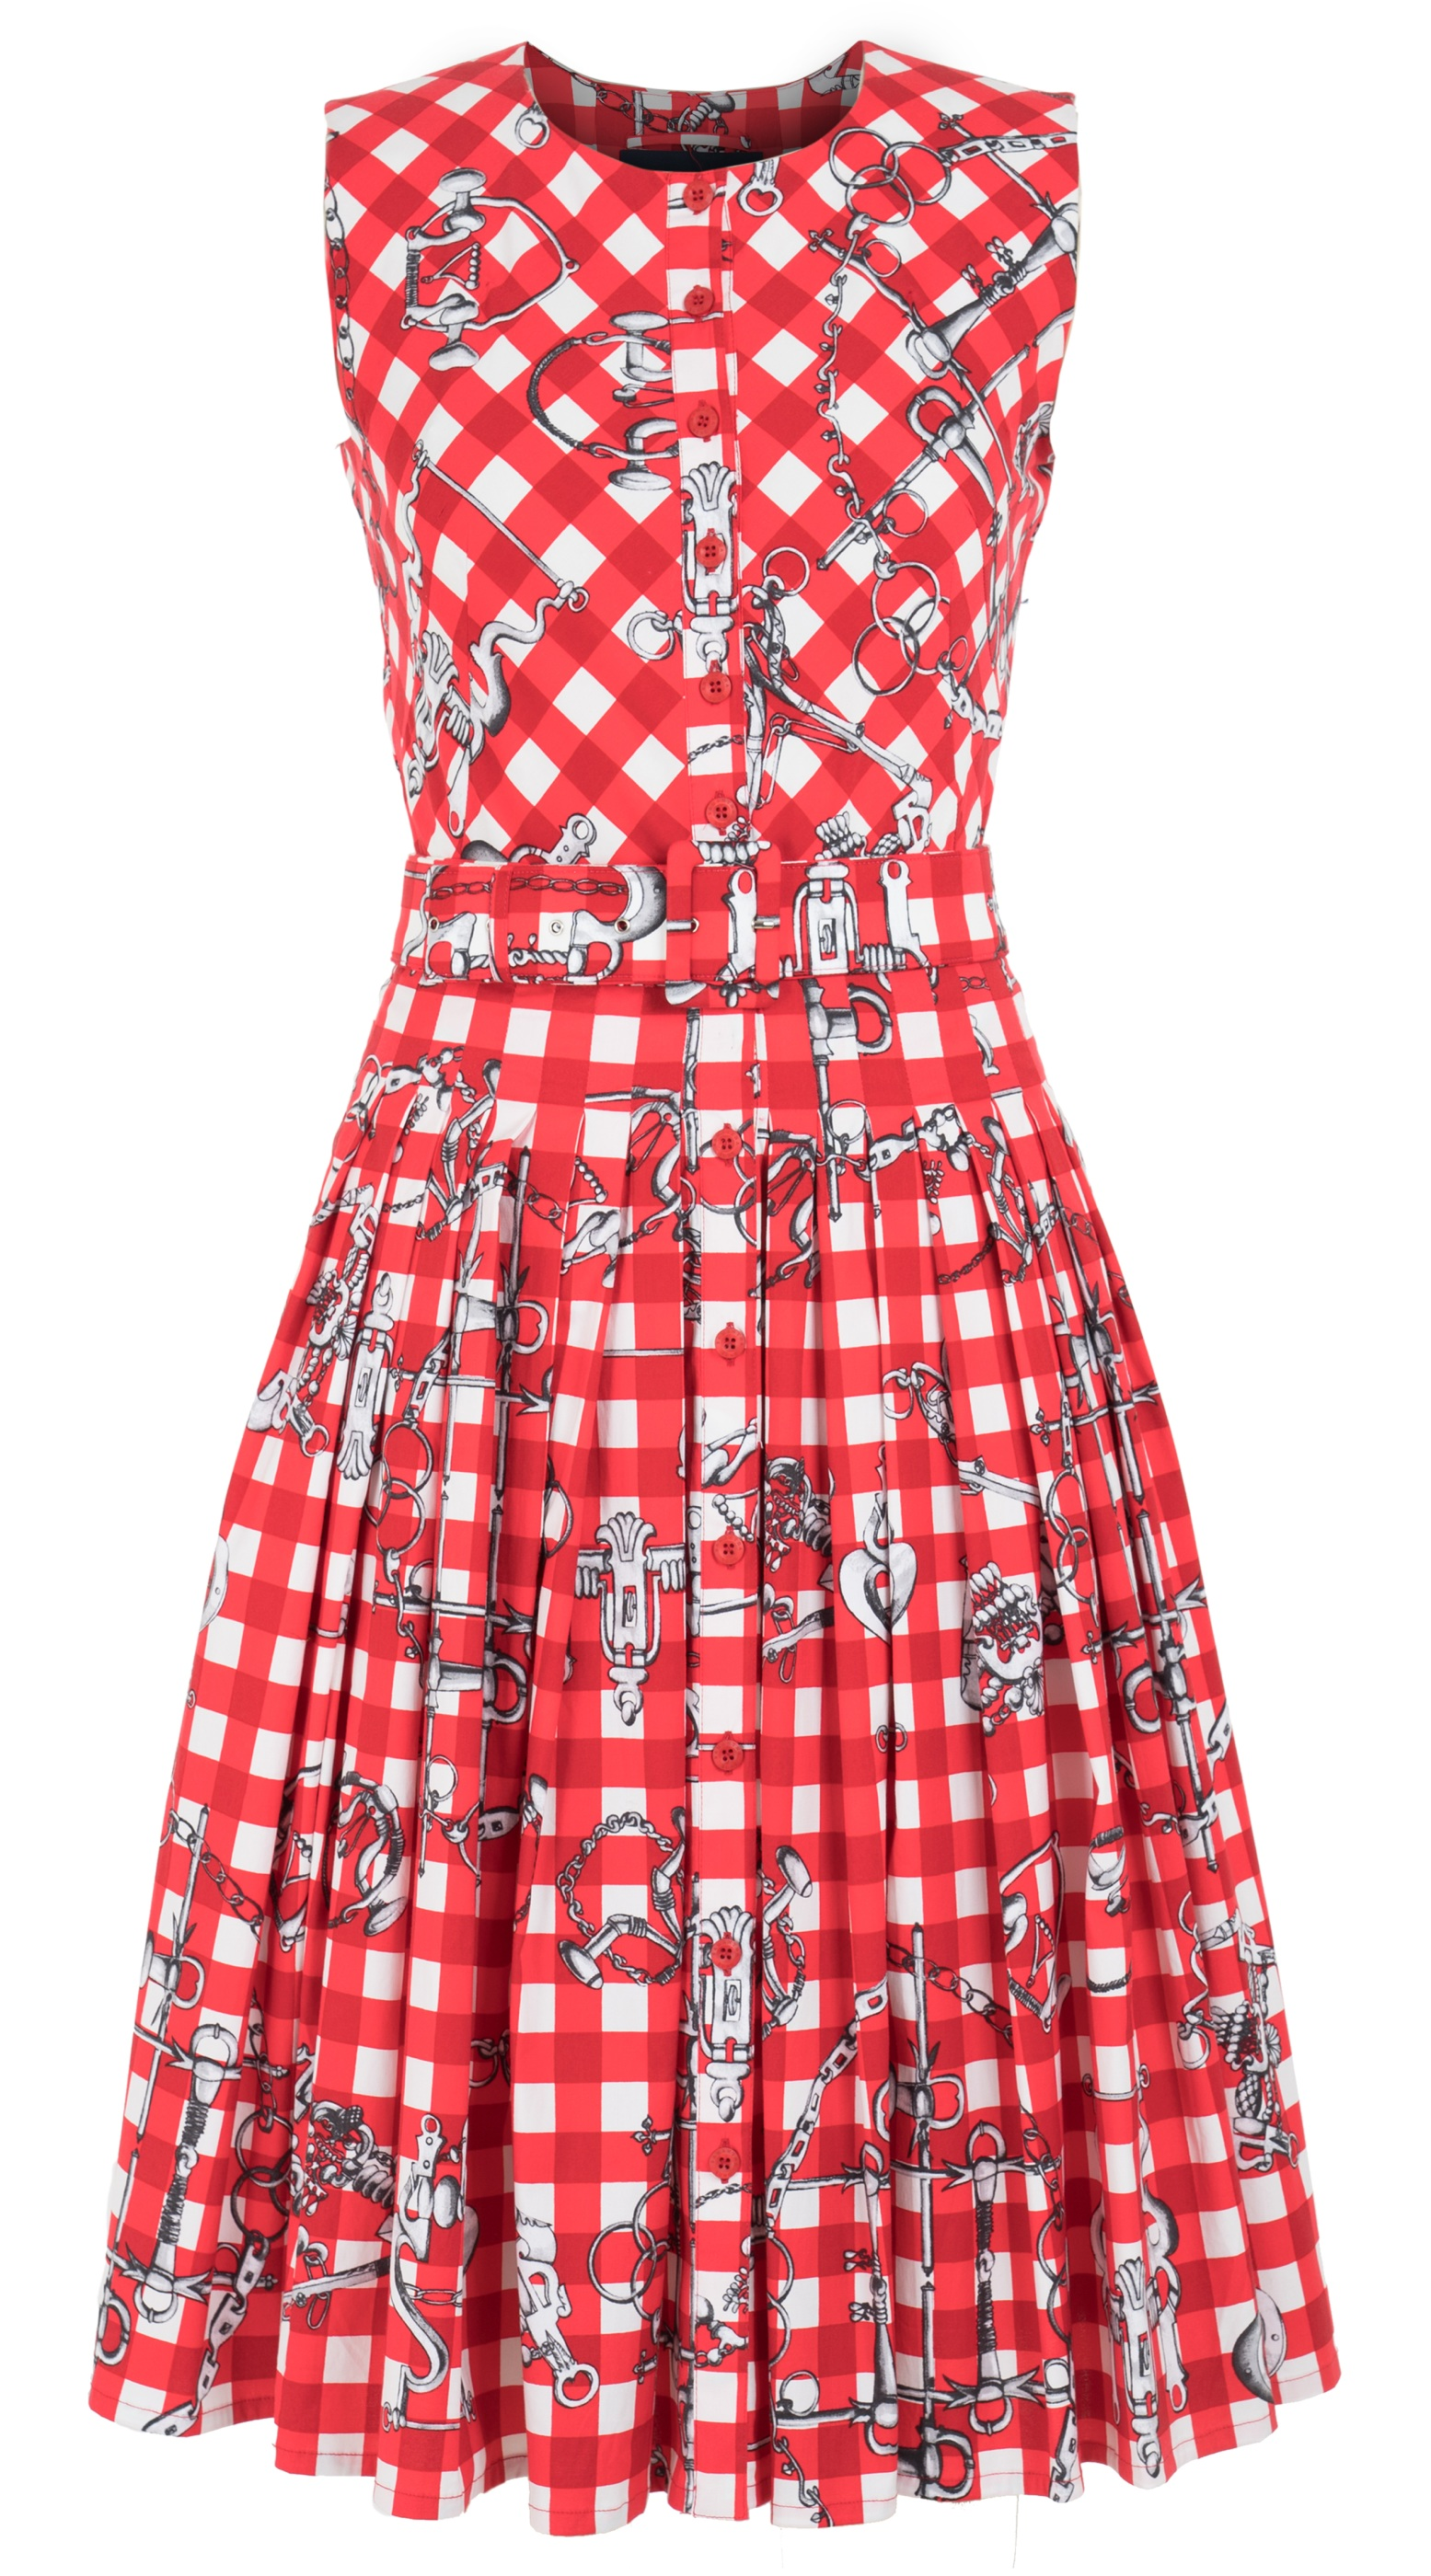 Horse Chain Gingham Bright_White Red_Audrey Dress #2 Crew Neck Sleeveless_CS_Front-2